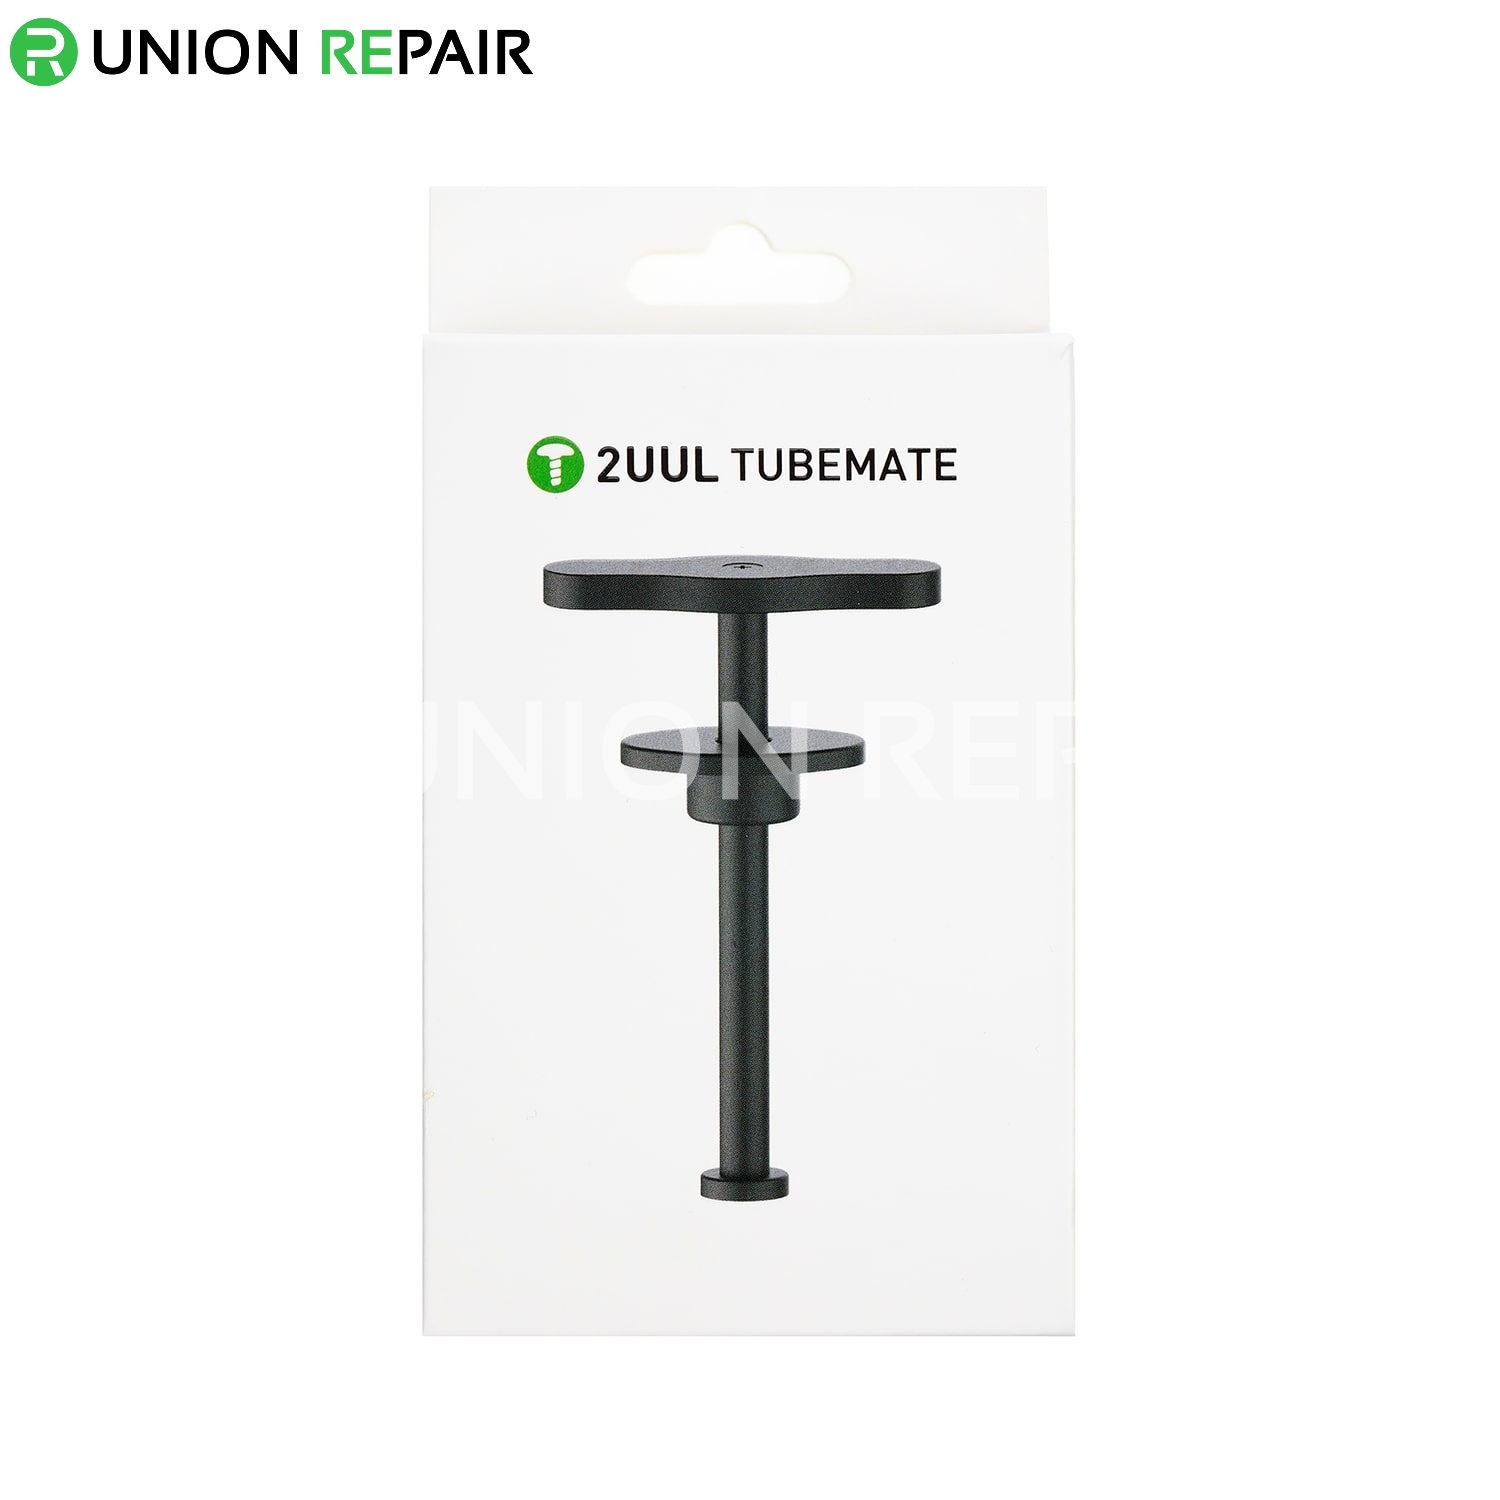 2UUL TubeMate Syringe for Flux Tube